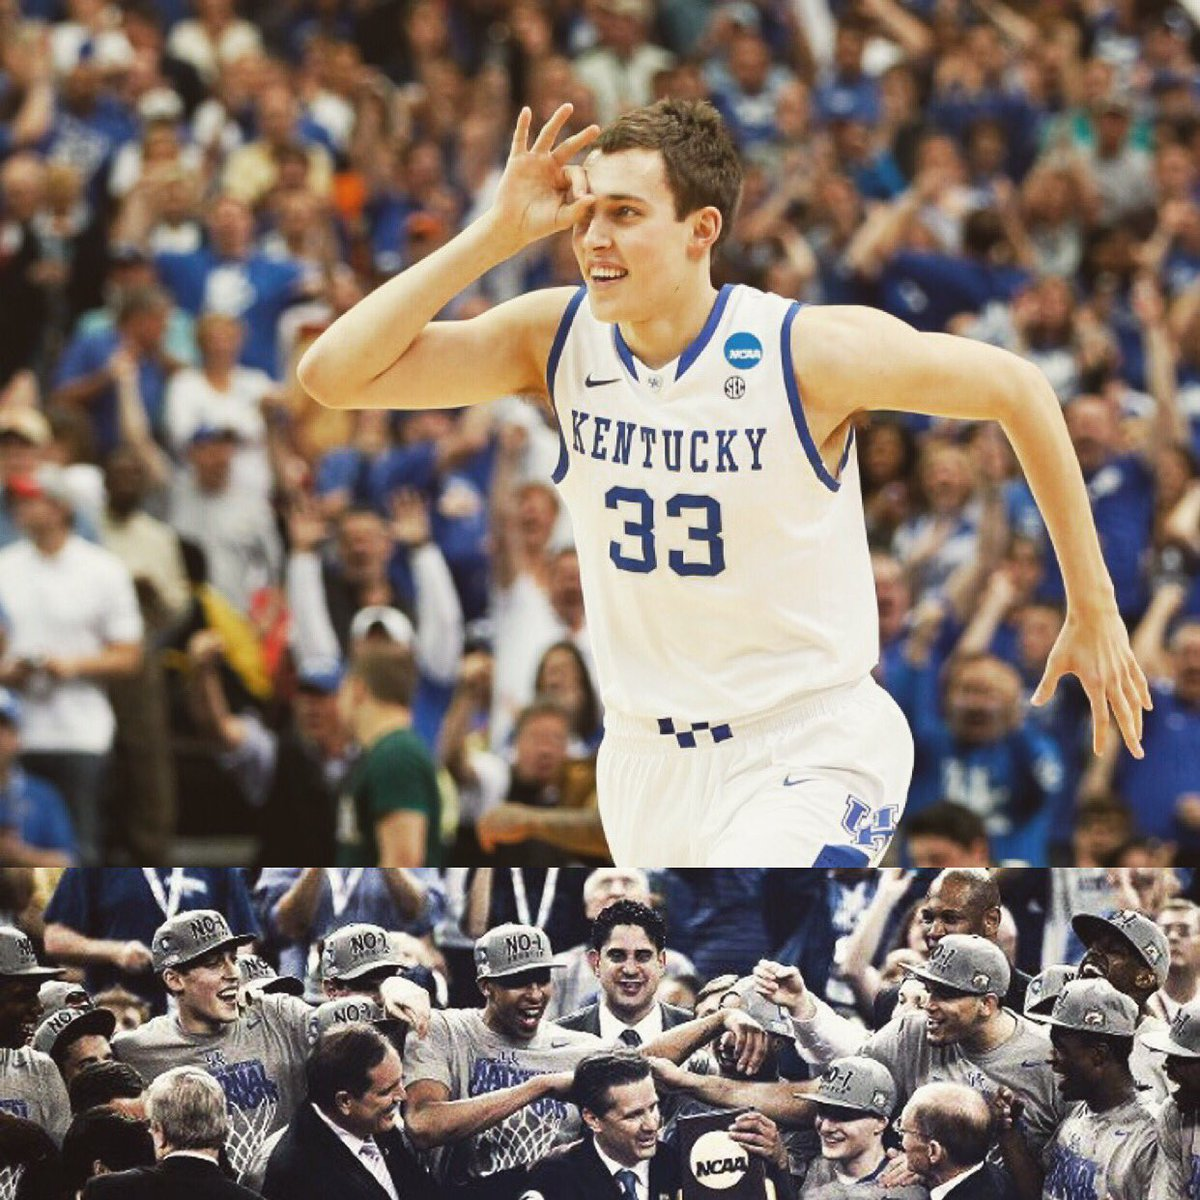 I know I've said it before but thank you BBN for your continued support, especially during the tourney!